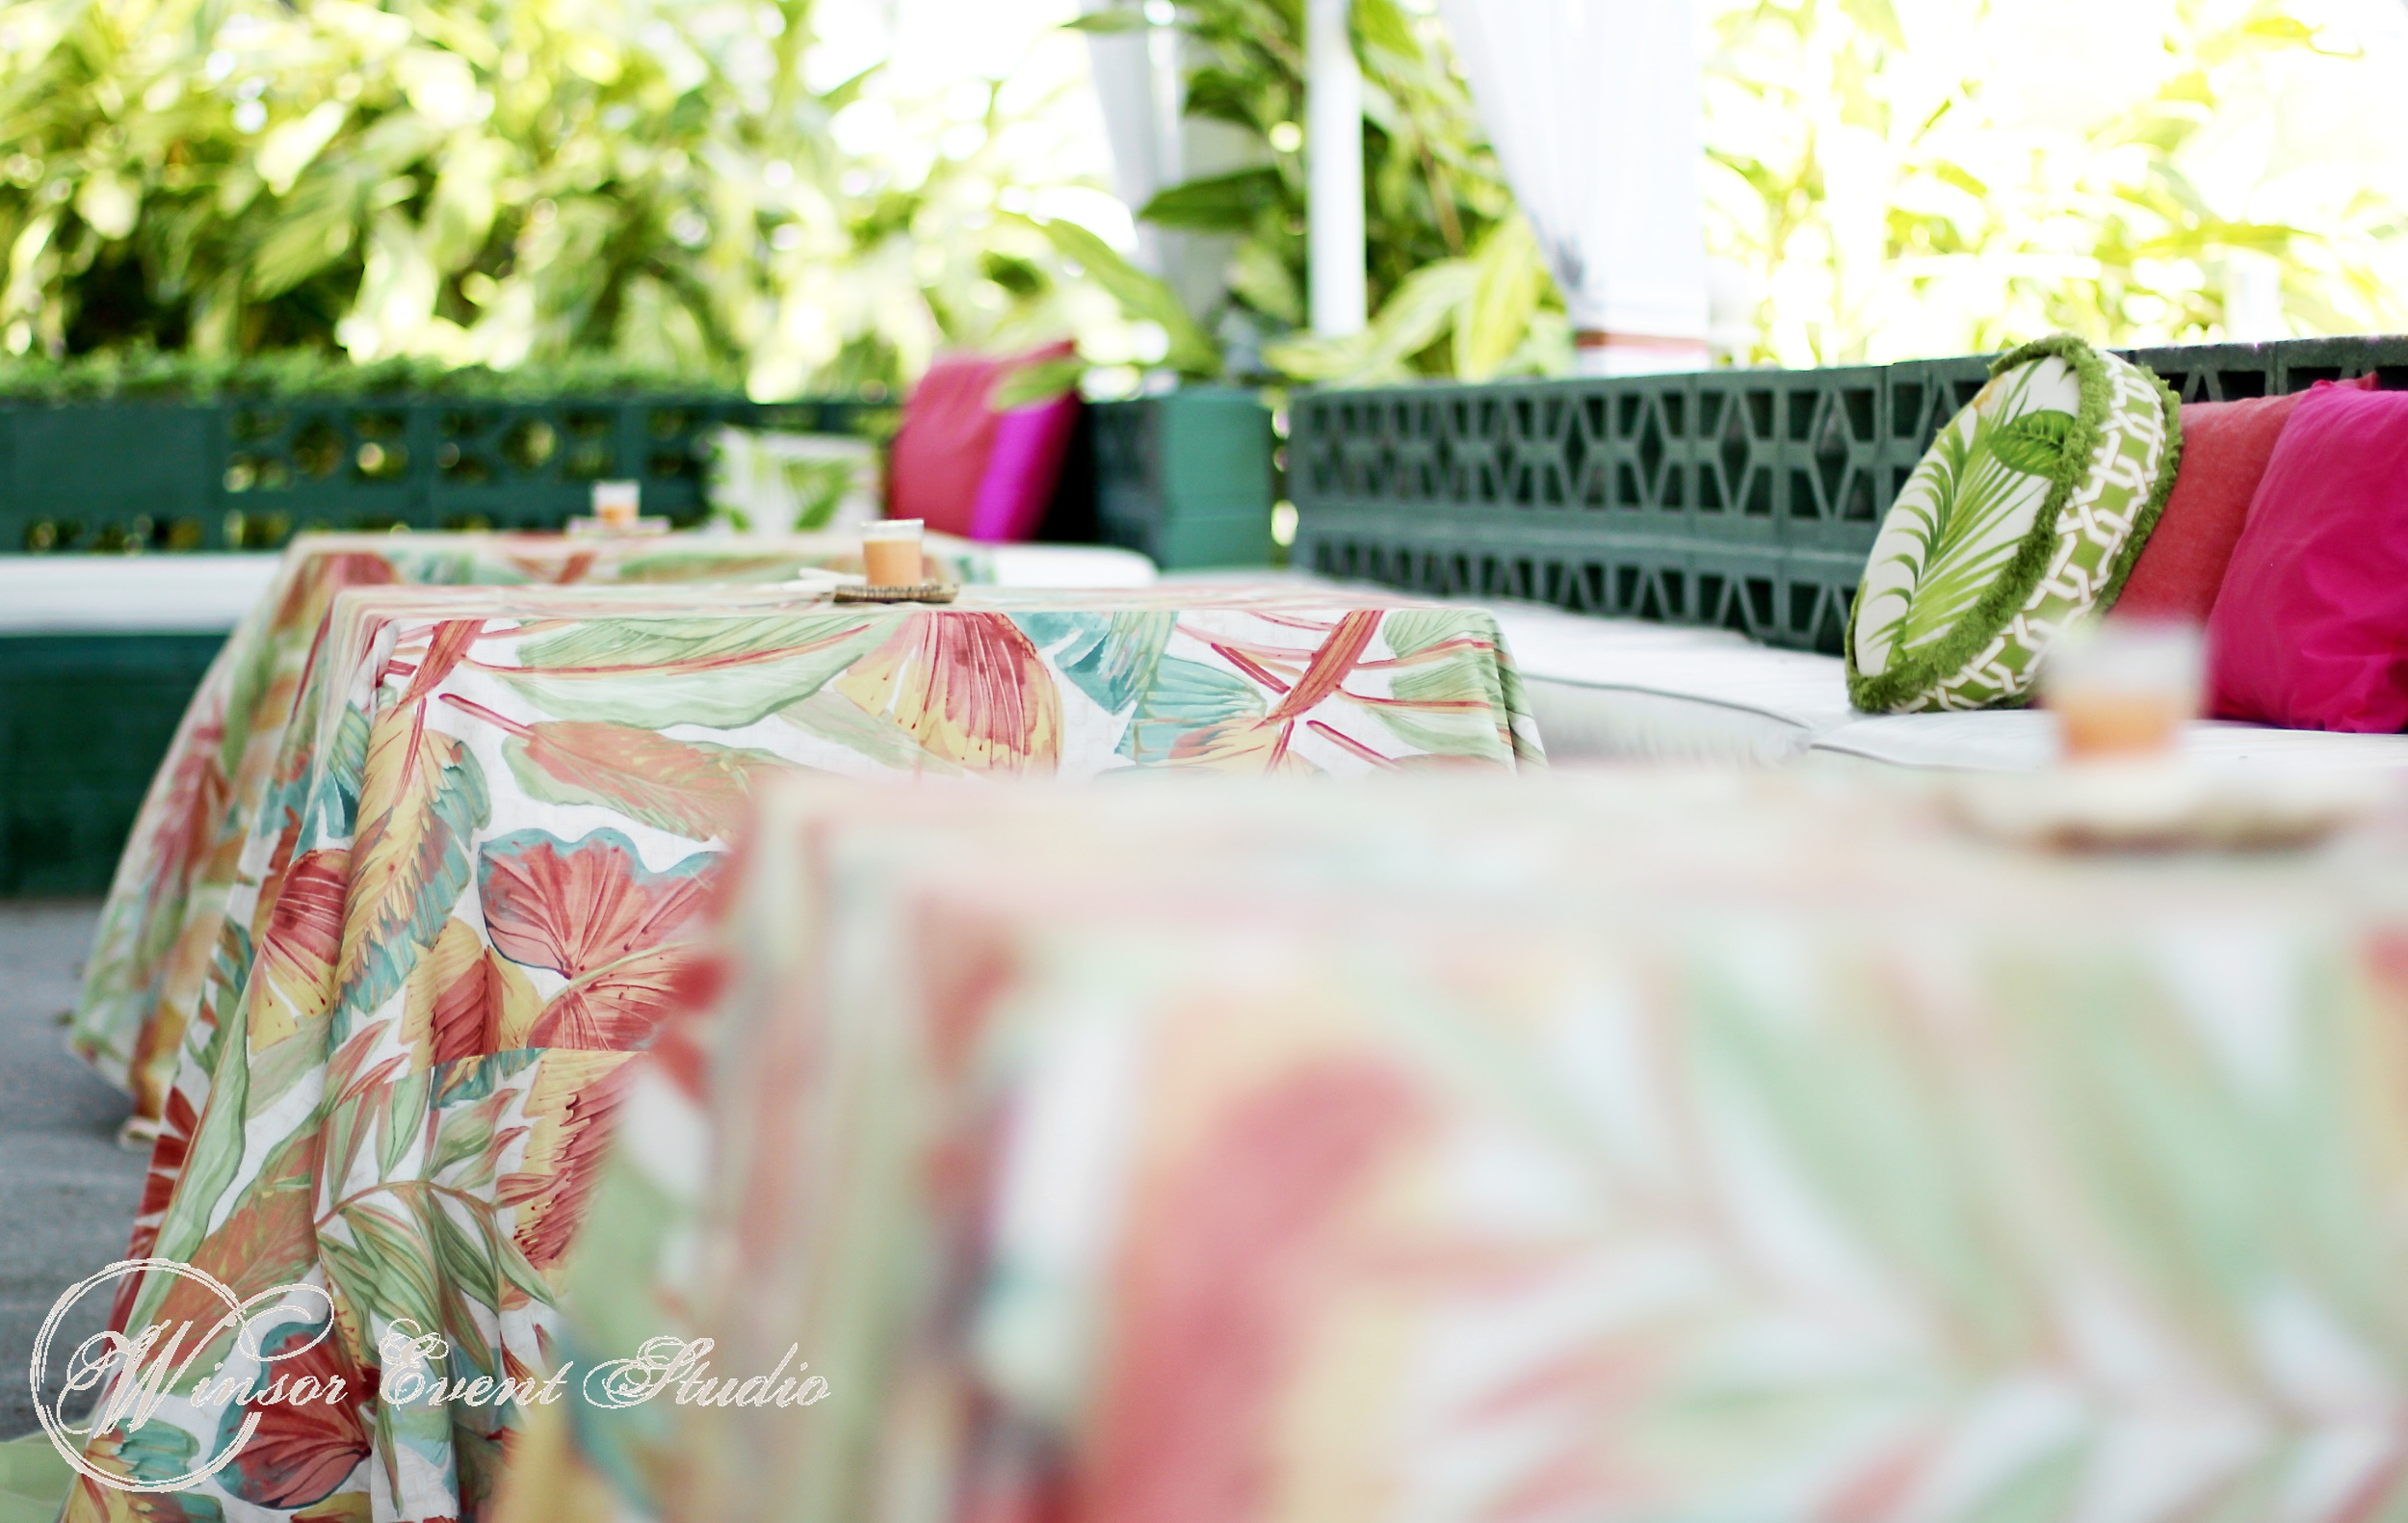 Cocktail tables were dressed in bright linens with a tropical motif, and the benches lined with colorful pillows